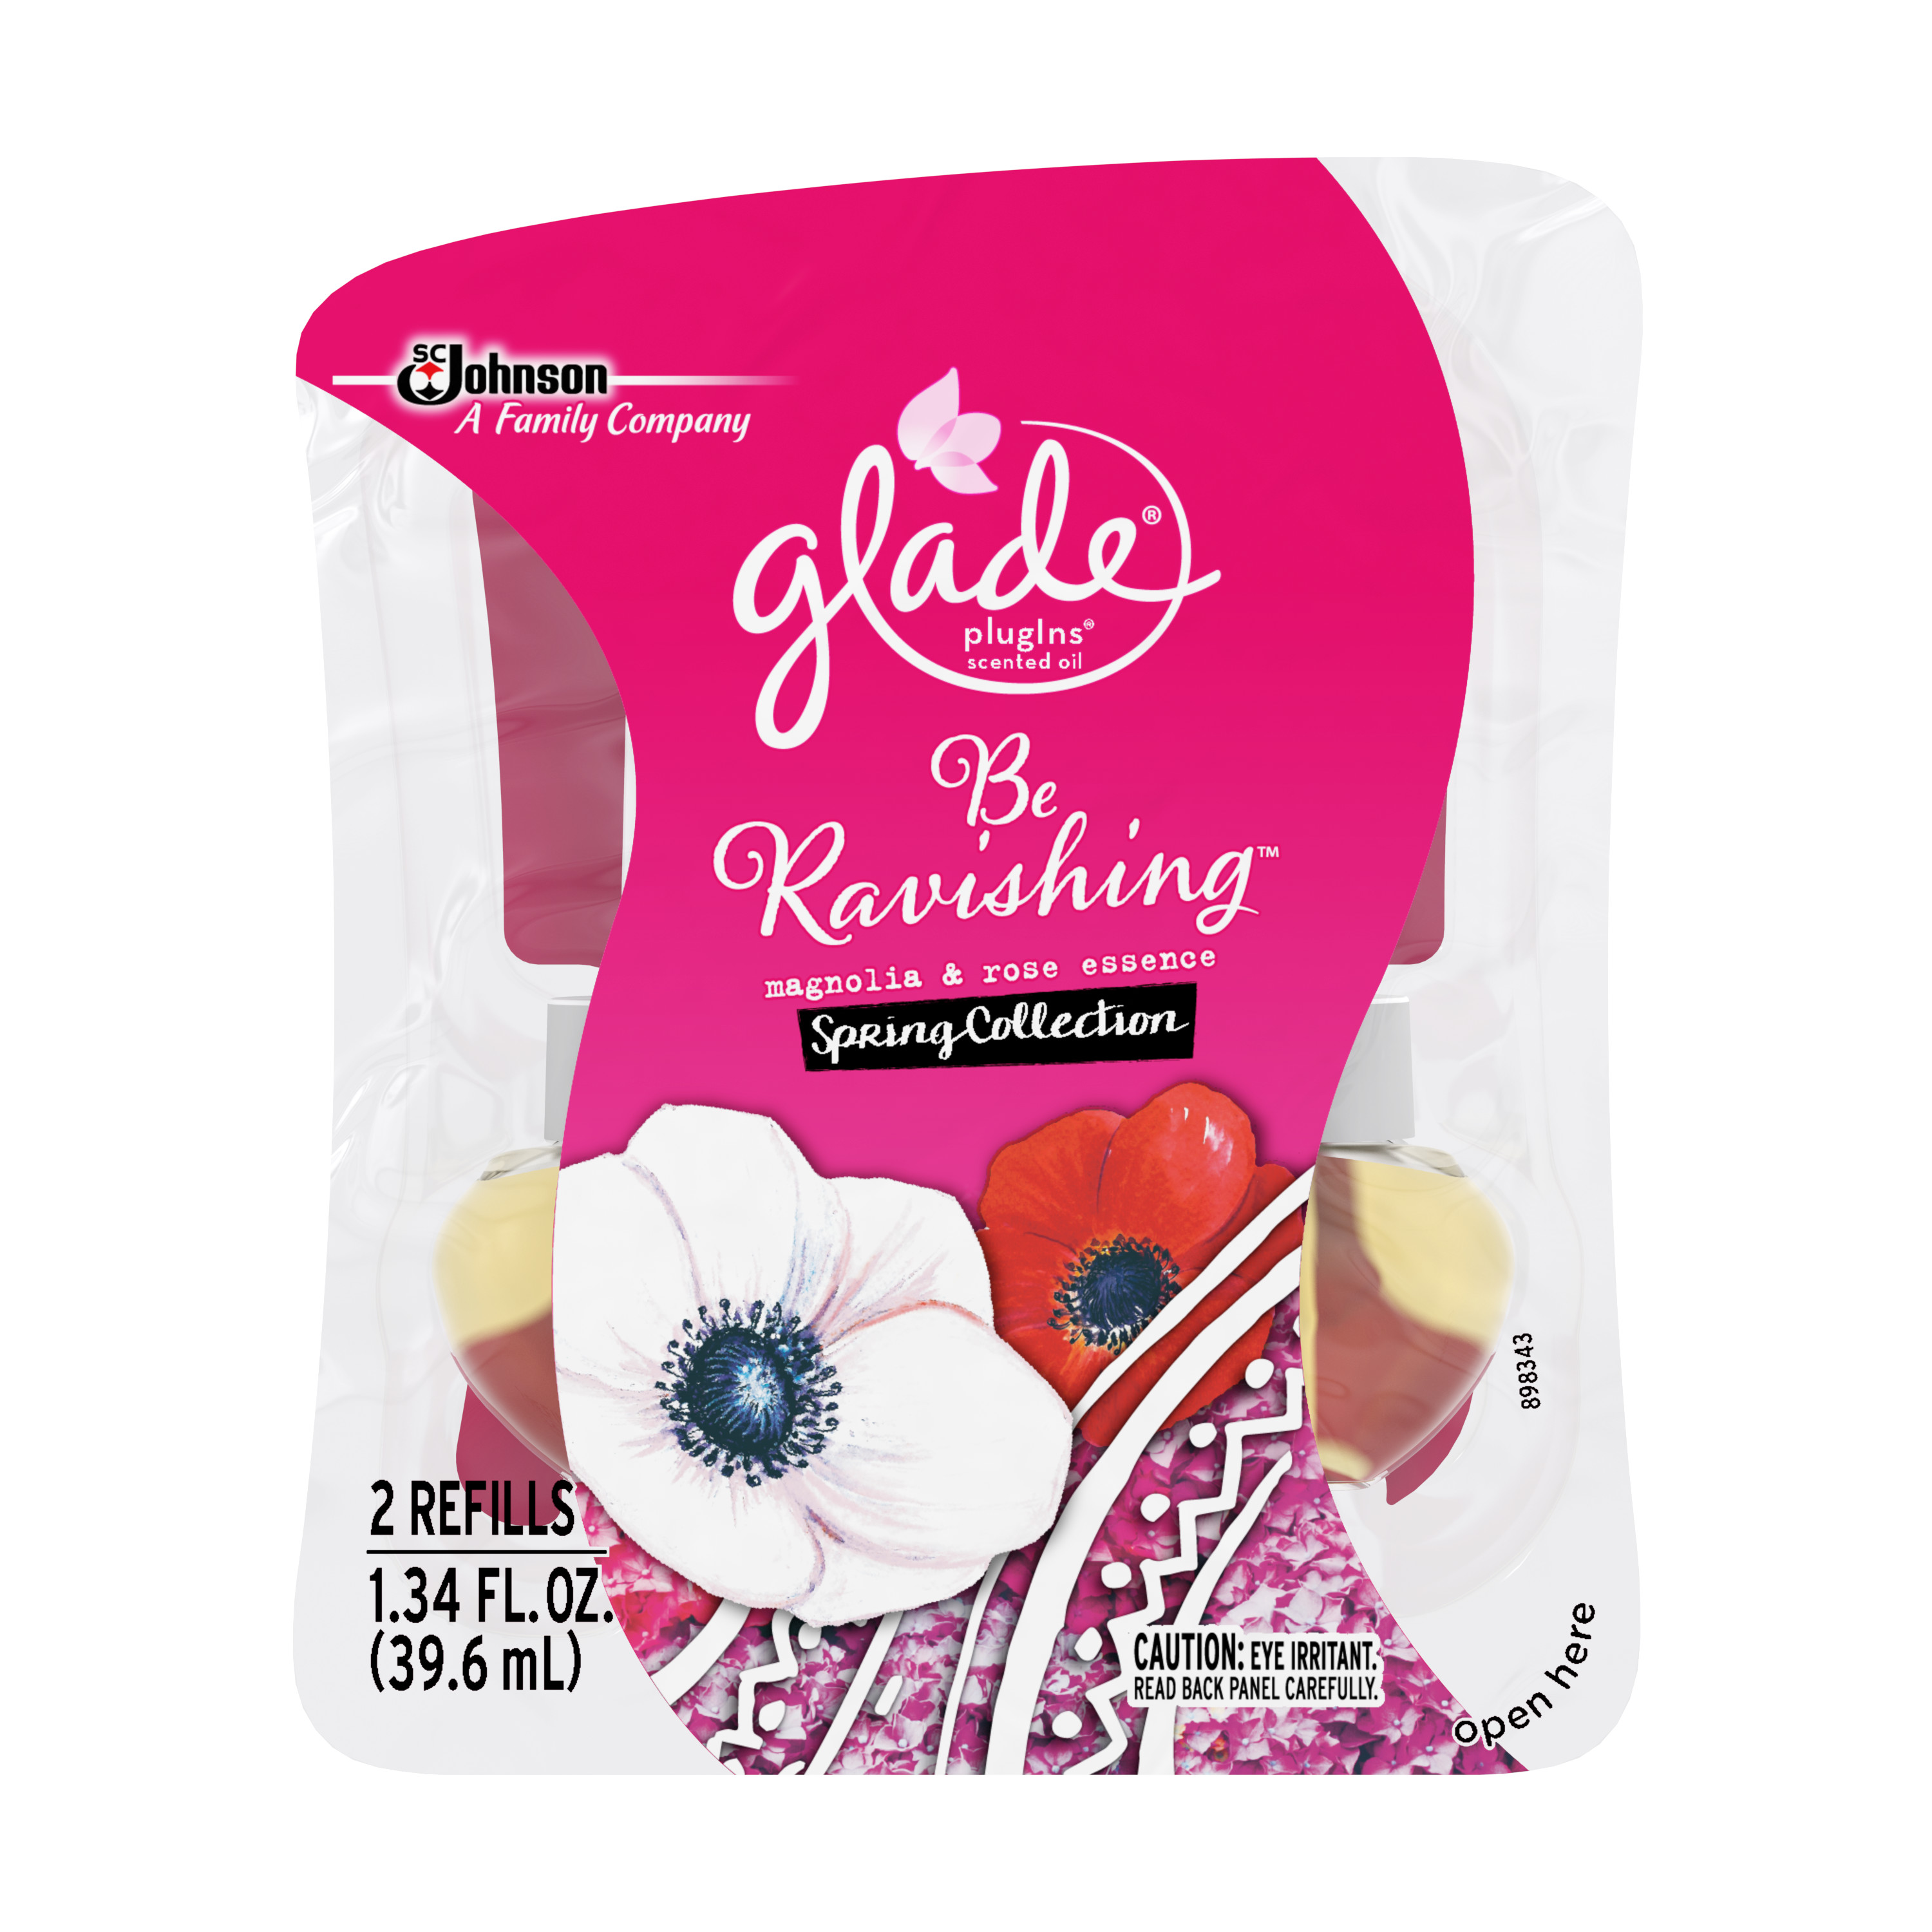 Glade PlugIns Scented Oil Air Freshener Refill, Be Ravishing, 2 count, 1.34 Fluid Ounces